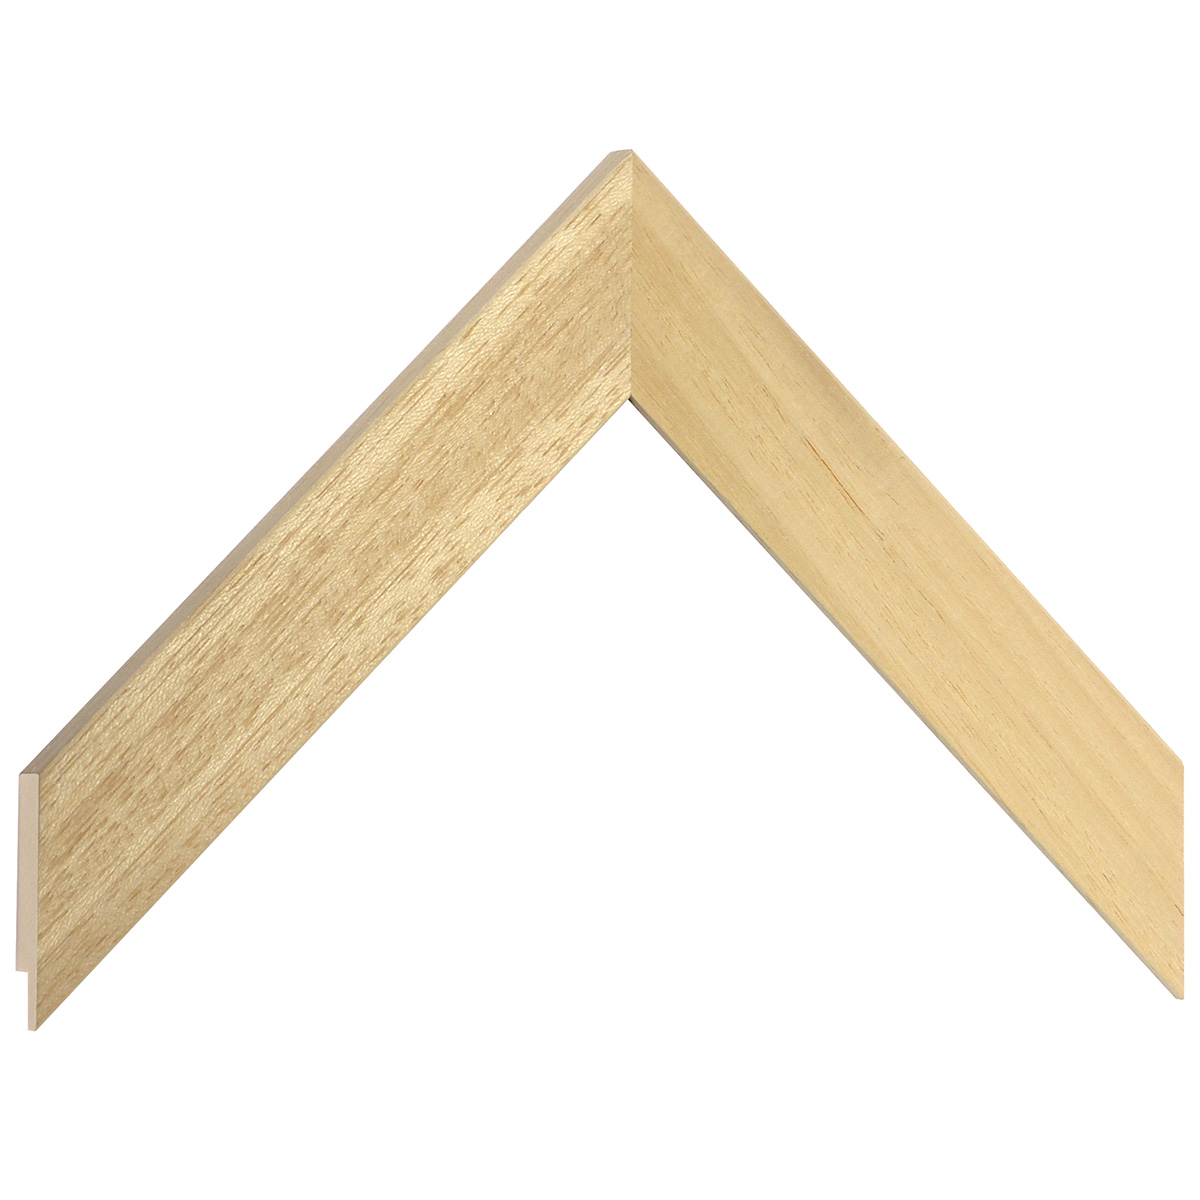 Moulding ayous, width 30mm, height 10mm, bare timber